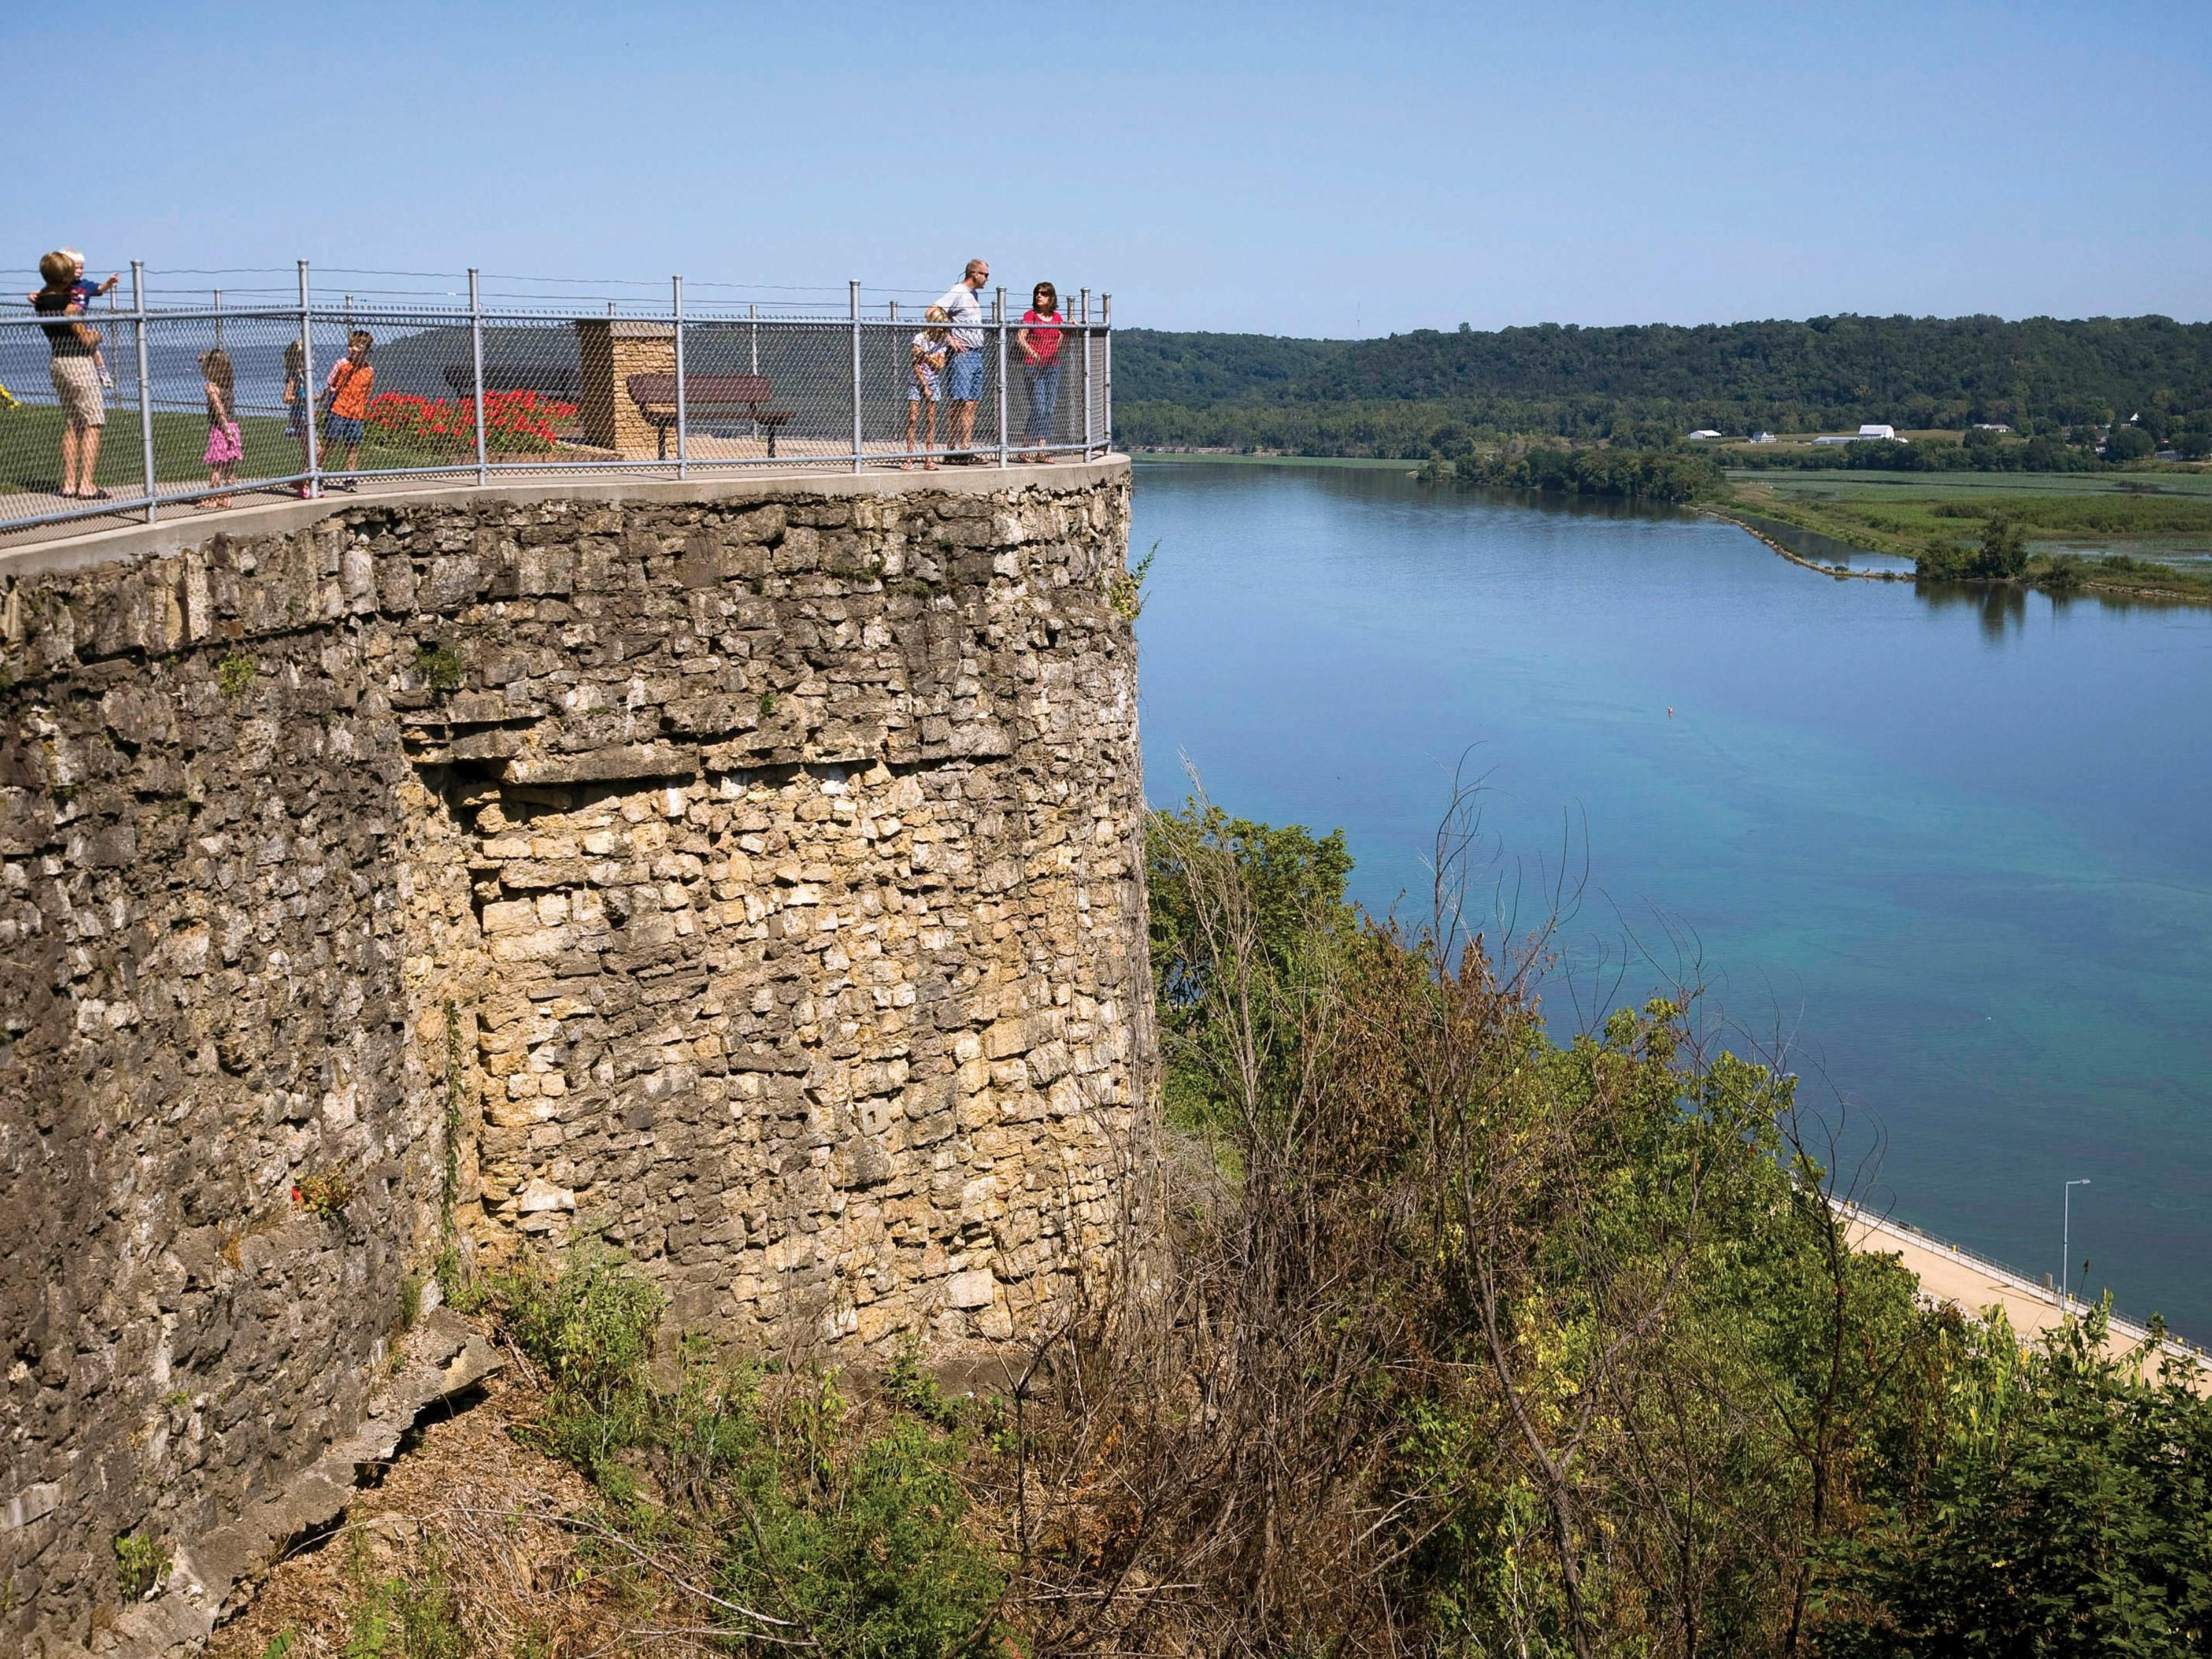 Visit Eagle Point Park for breathtaking views of the Mississippi